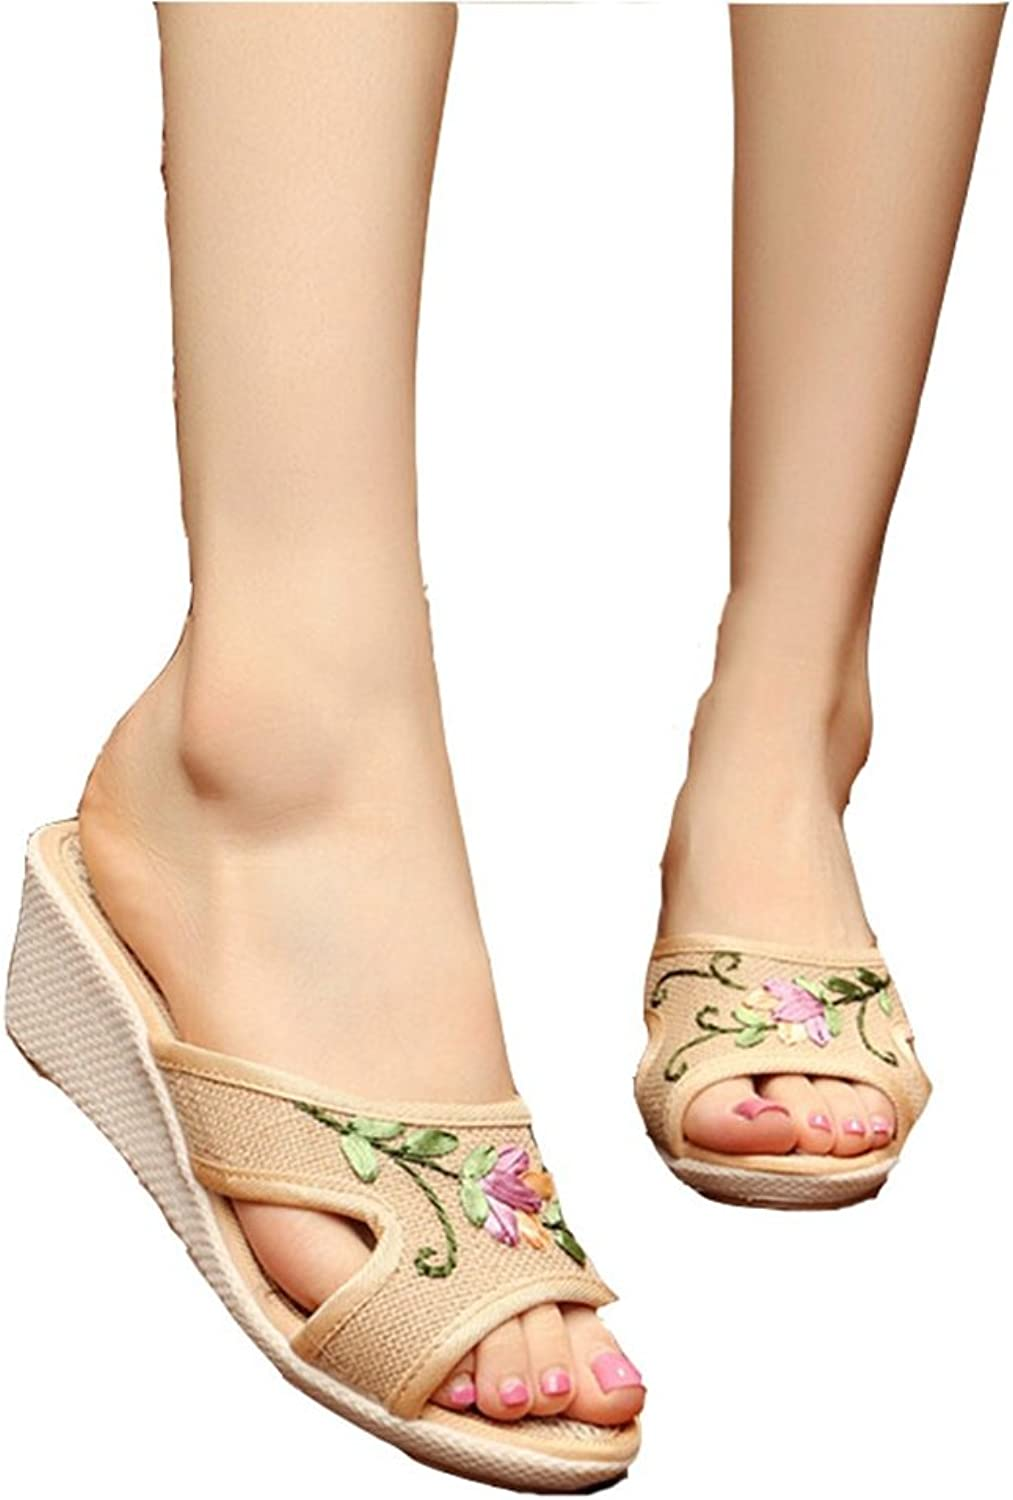 T-JULY Womens Ladies Wedge High Heel Sandals Embroidered Floral Slip On Slippers Linen Canvas shoes